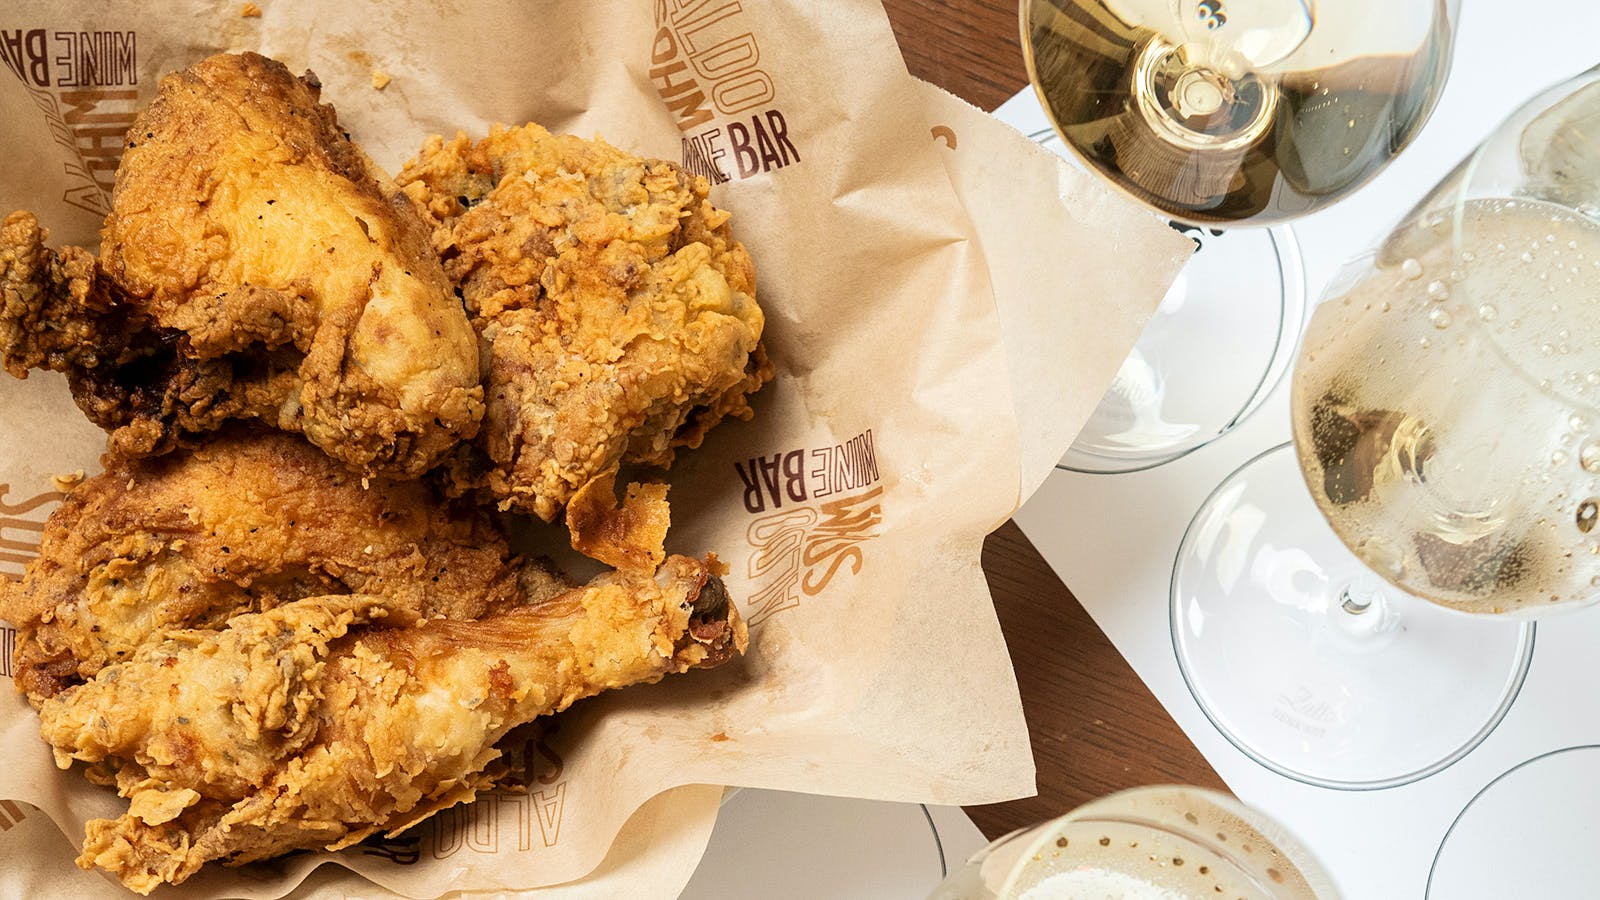 Aldo Sohm's First Tasting: Sparkling Wine and Fried Chicken